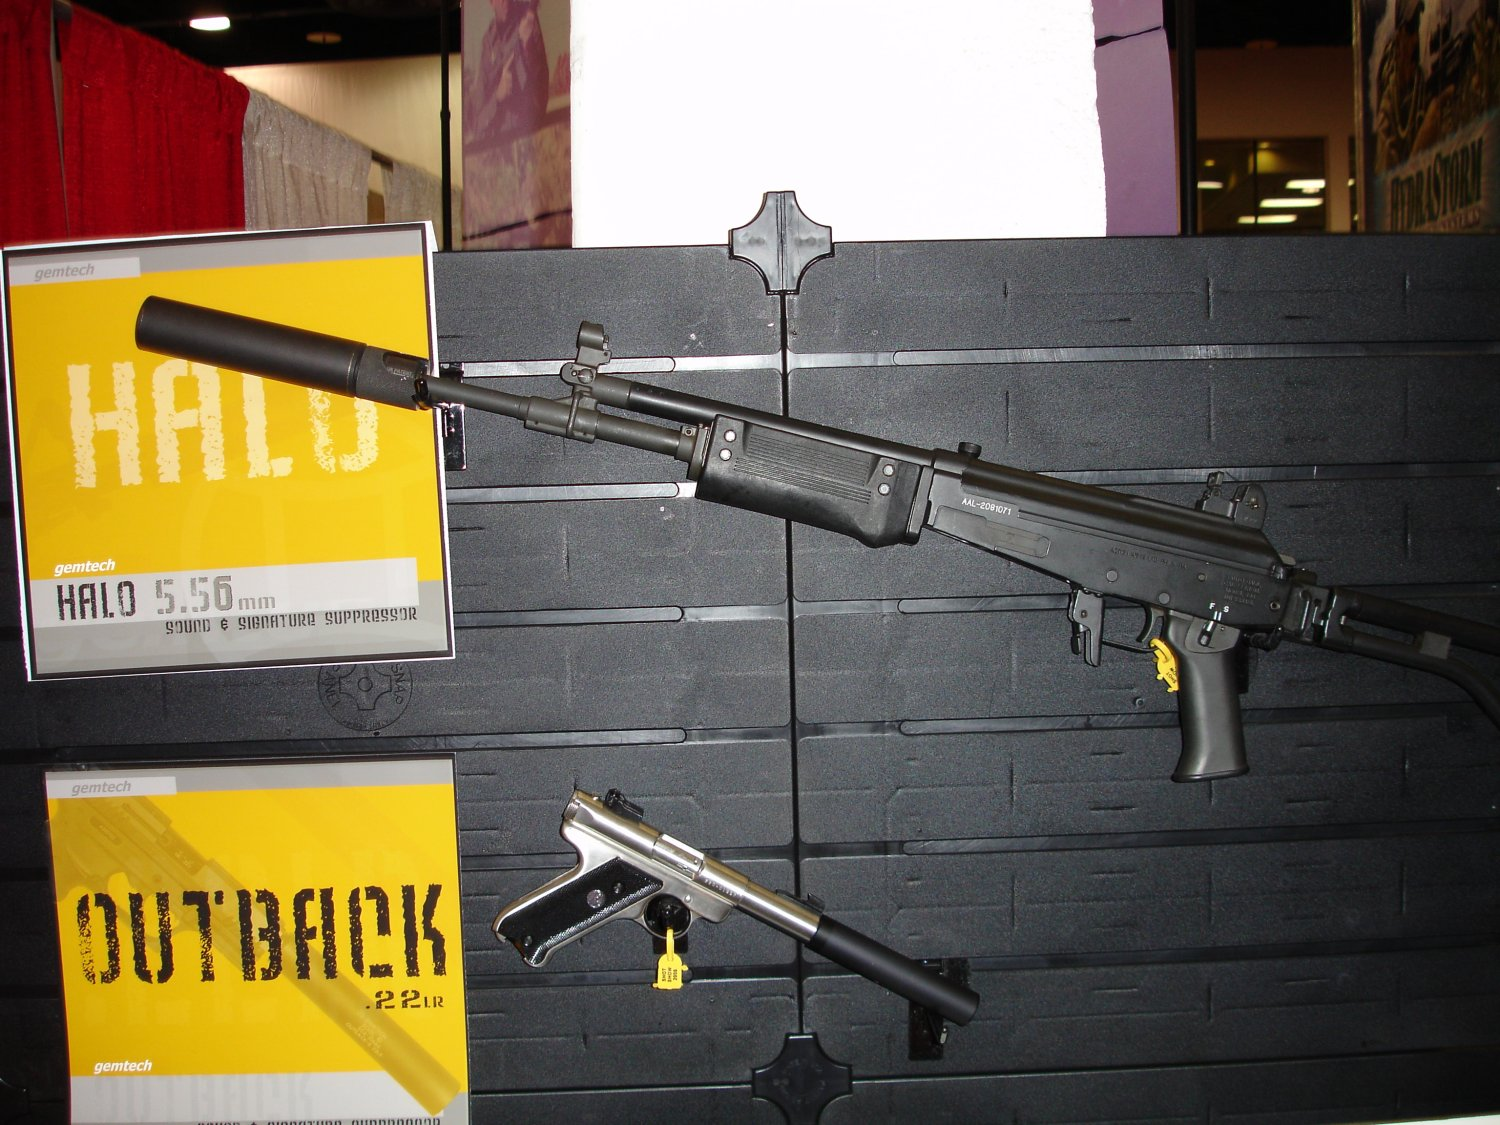 Gemtech 3 <!  :en  >SHOT Show Pics: Gemtech Sound and Signature Suppressors for Tactical Small Arms<!  :  >